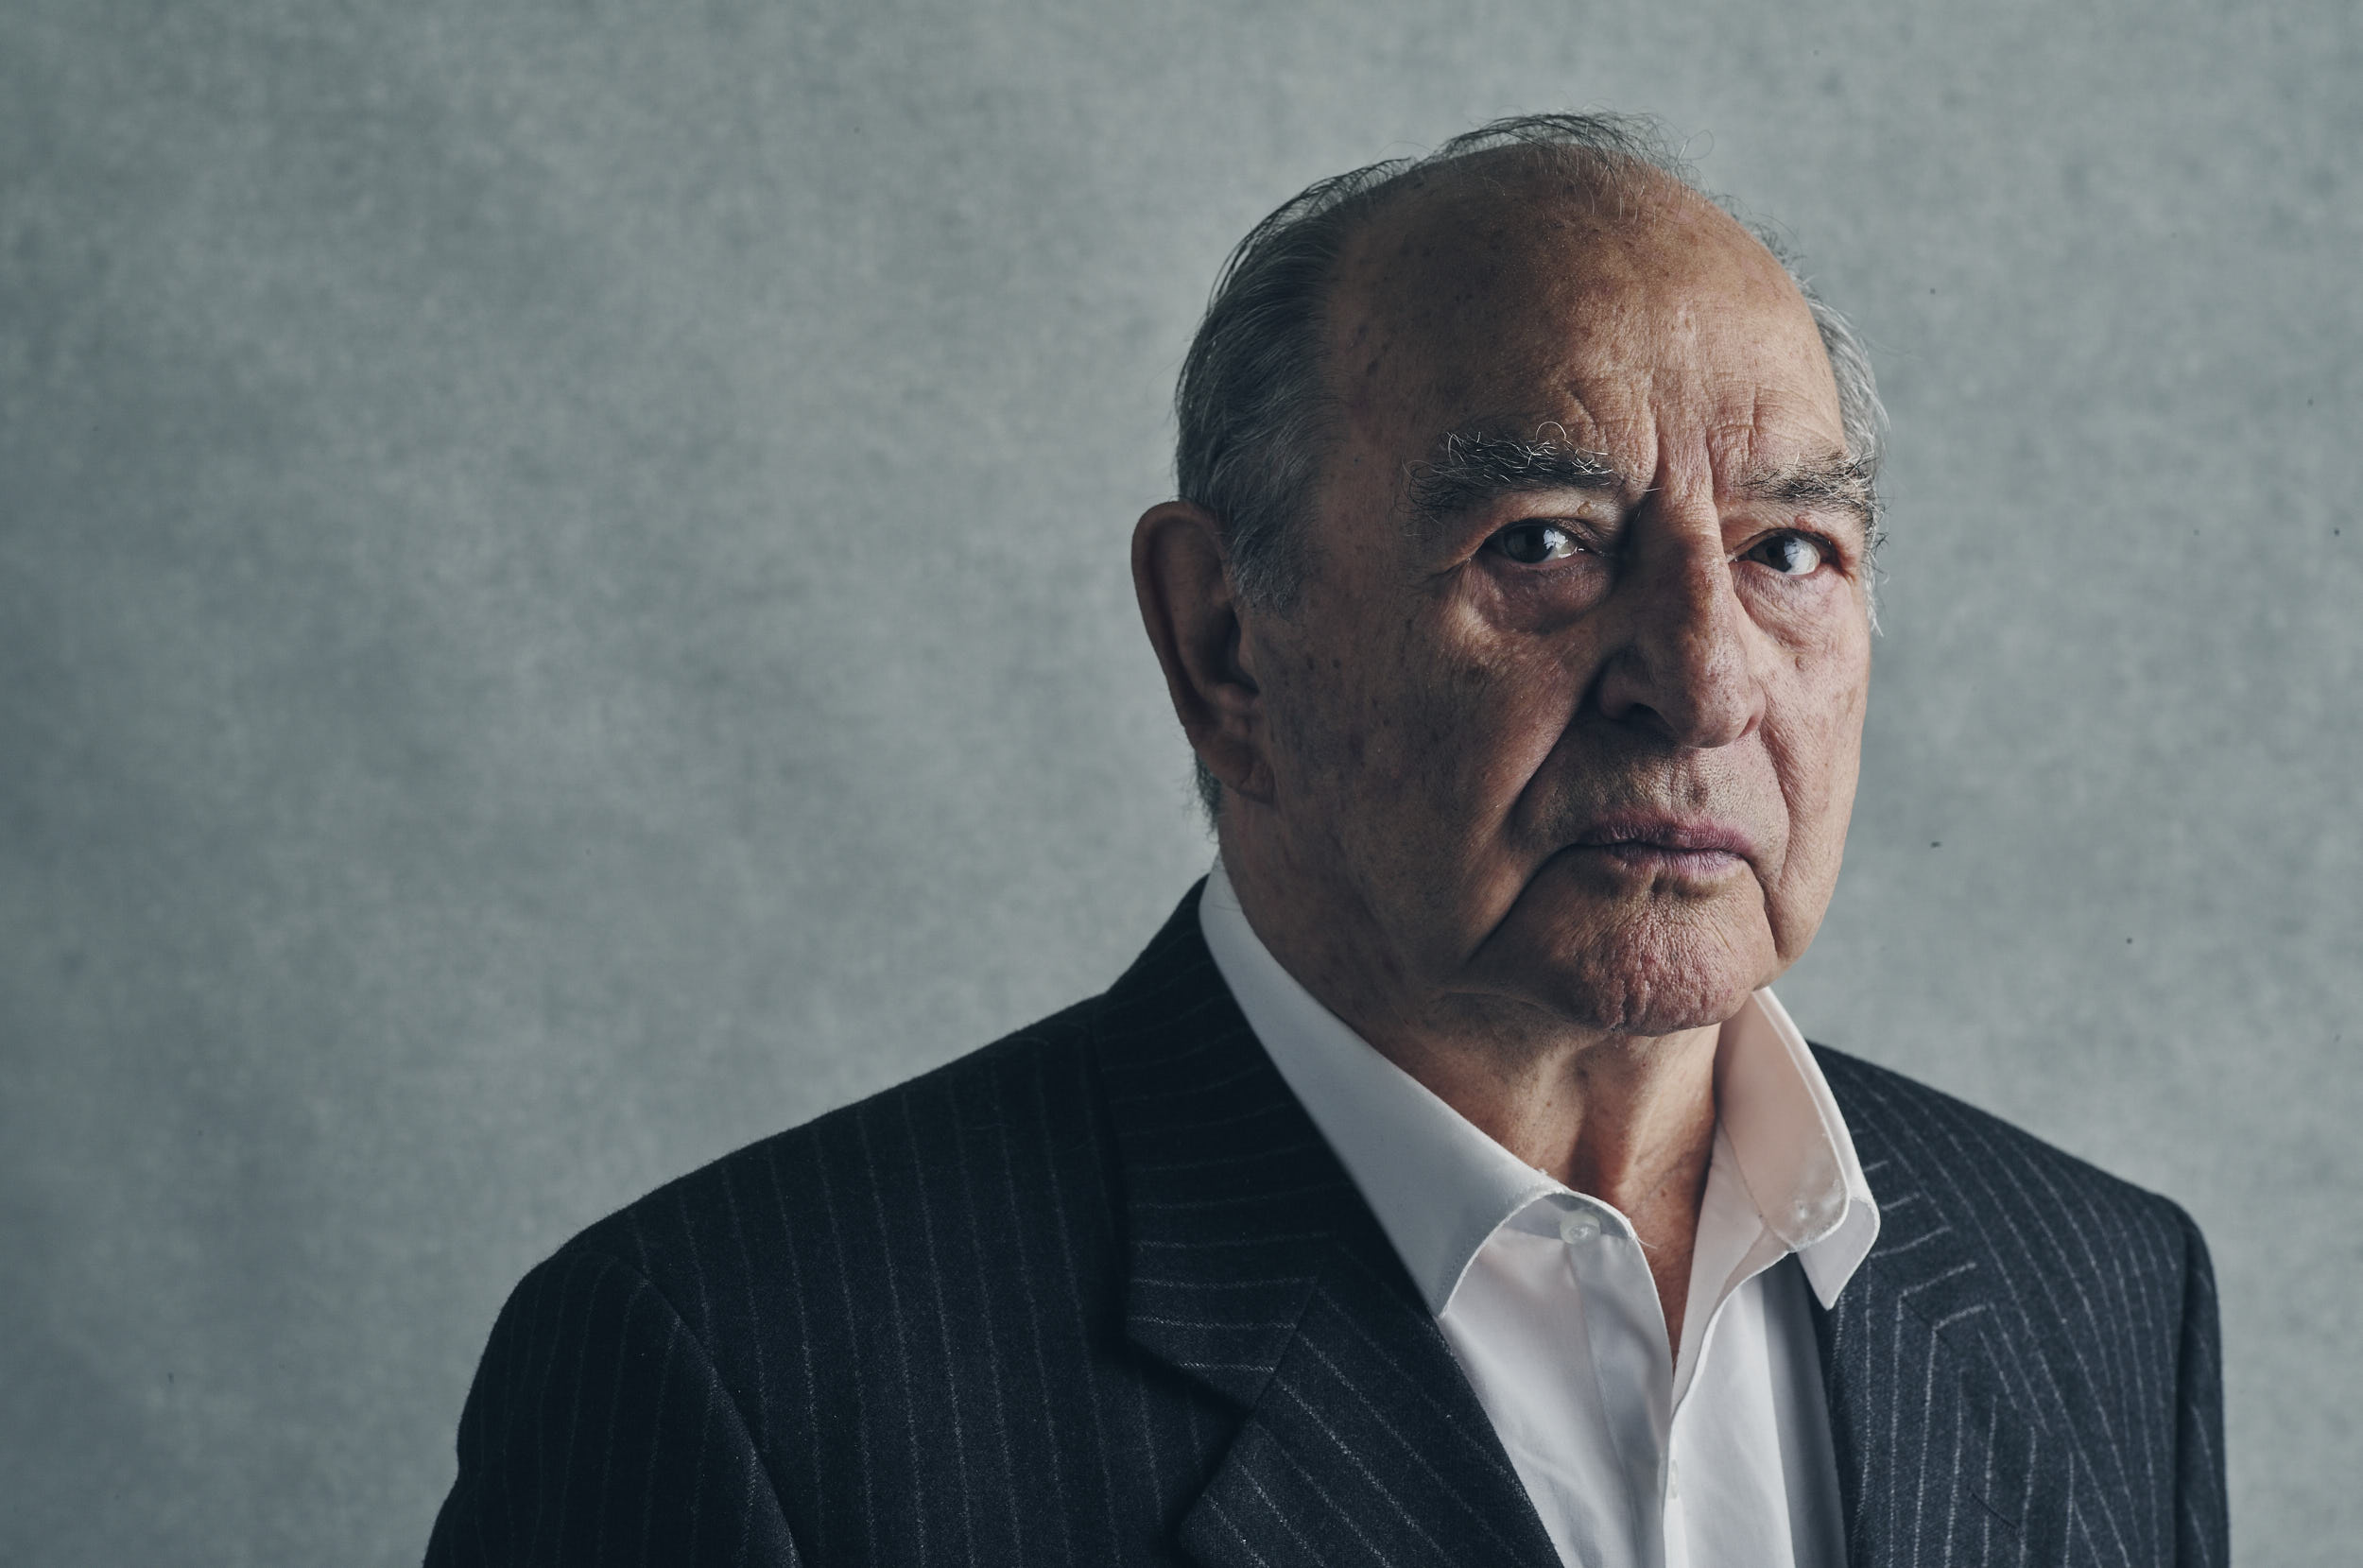 Head and Shoulder shot off famous East End gangster, Freddie Foreman